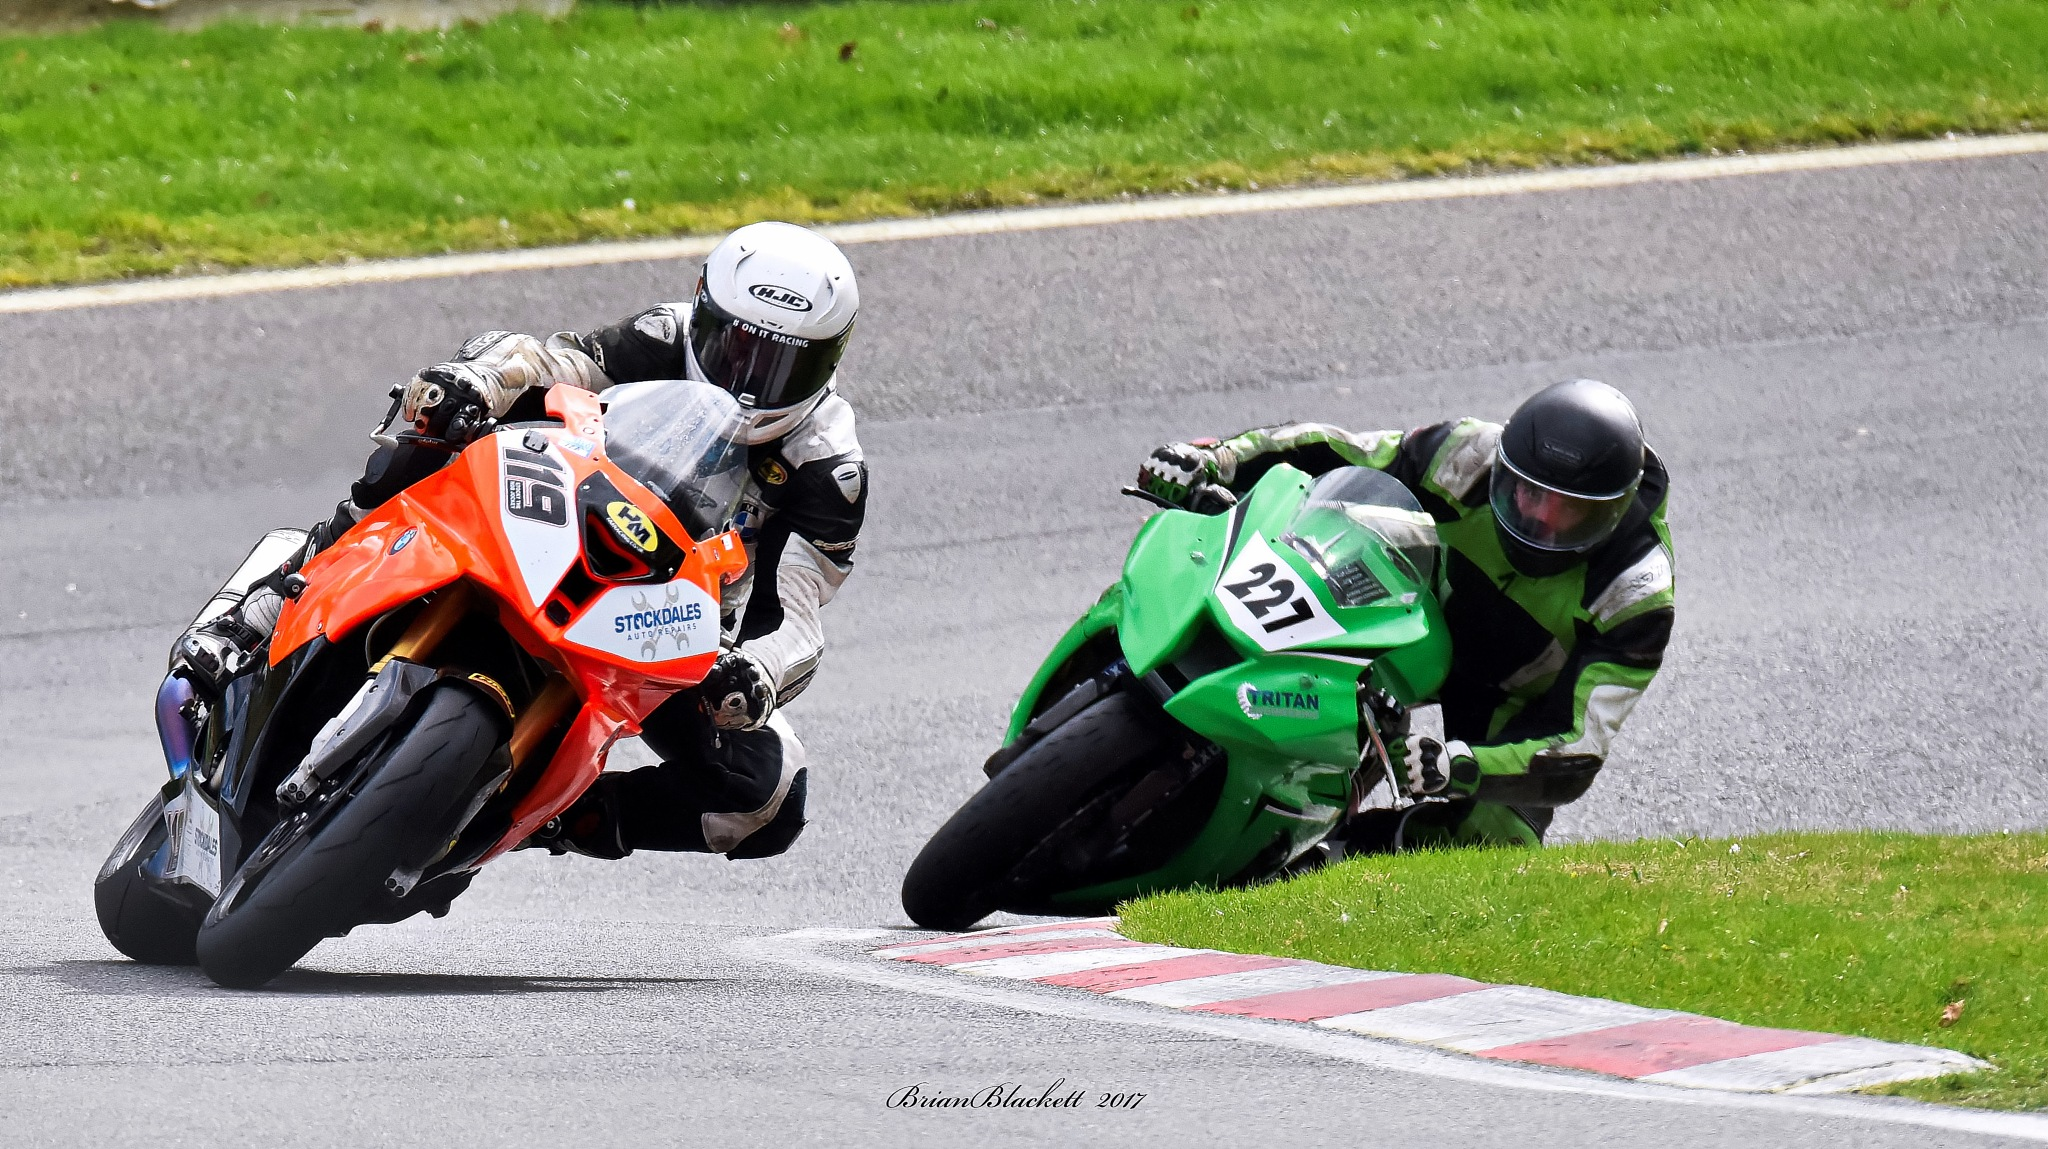 Auto 66 T.T. warm Up Meeting Cadwell Park Lincs. 2017. by brianblackett